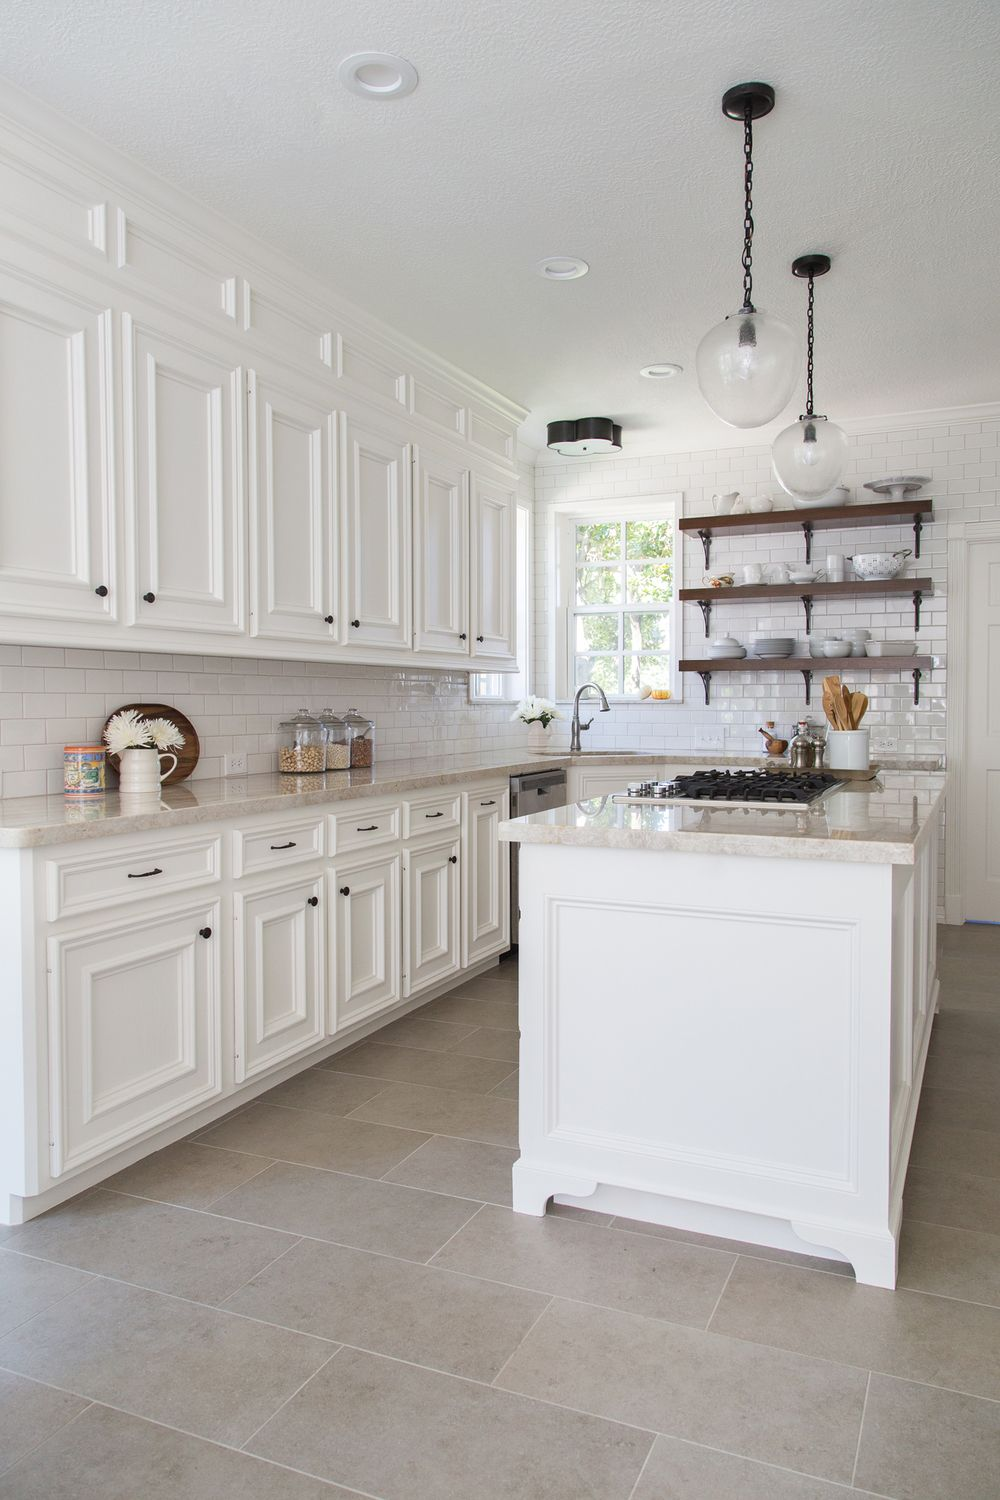 BEFORE & AFTER: A Dark, Dismal Kitchen Is Made Light And Bright ...